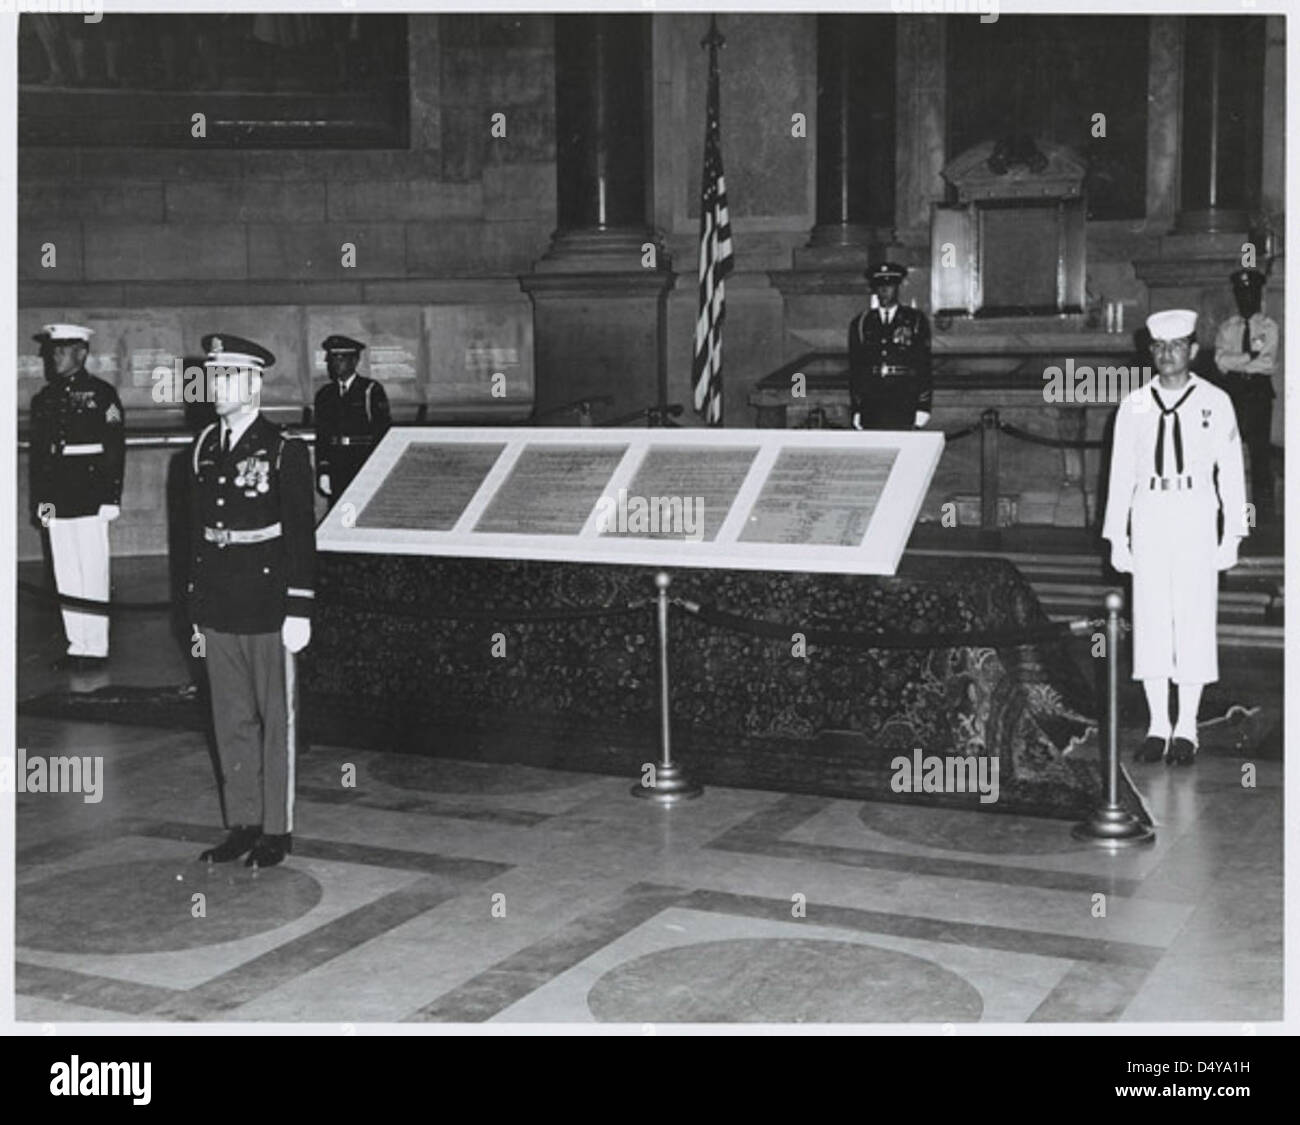 Photograph of First Exhibit of Entire U.S. Constitution Day Exhibit, 1970 - Stock Image